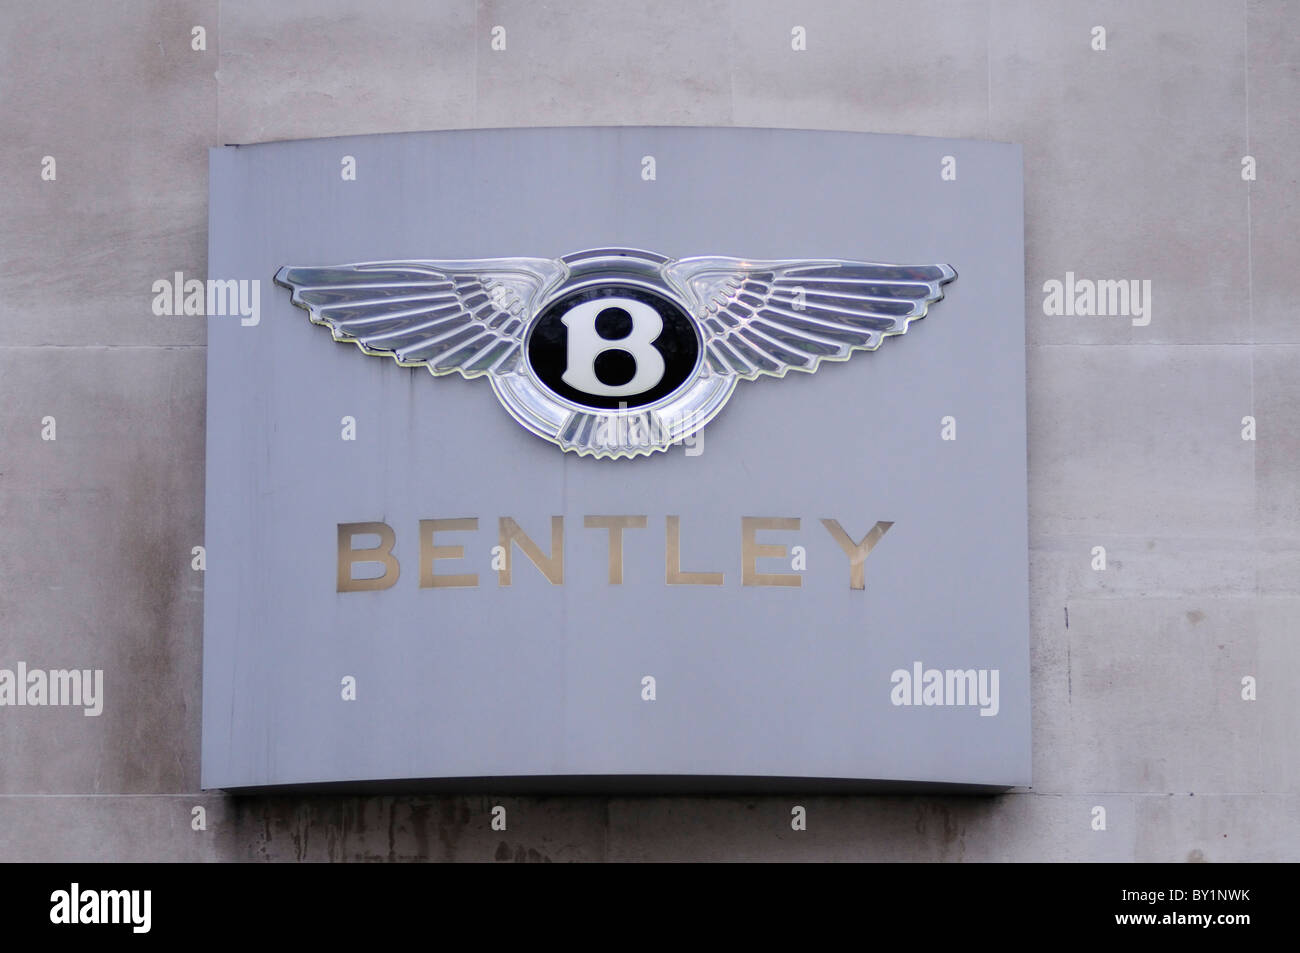 Bentley Luxus Auto Marque Symbol Logo, Berkeley Square, Mayfair, London, England, UK Stockbild